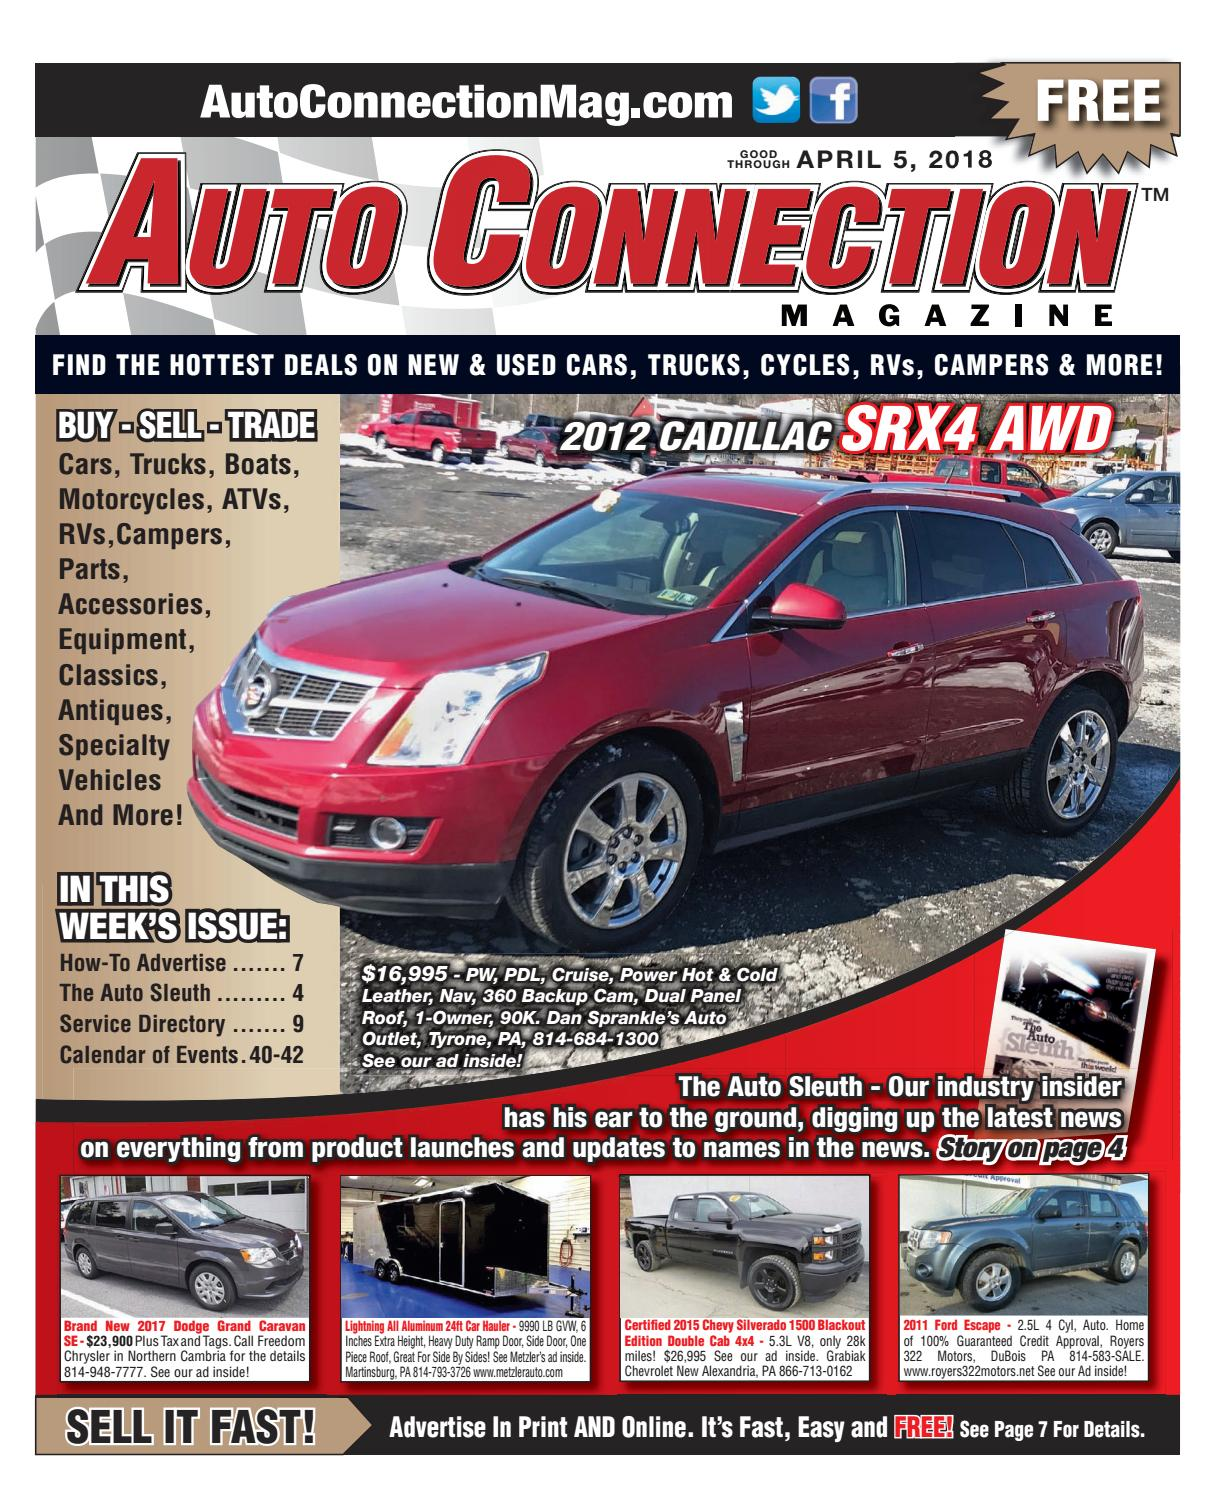 04-05-18 Auto Connection Magazine by Auto Connection